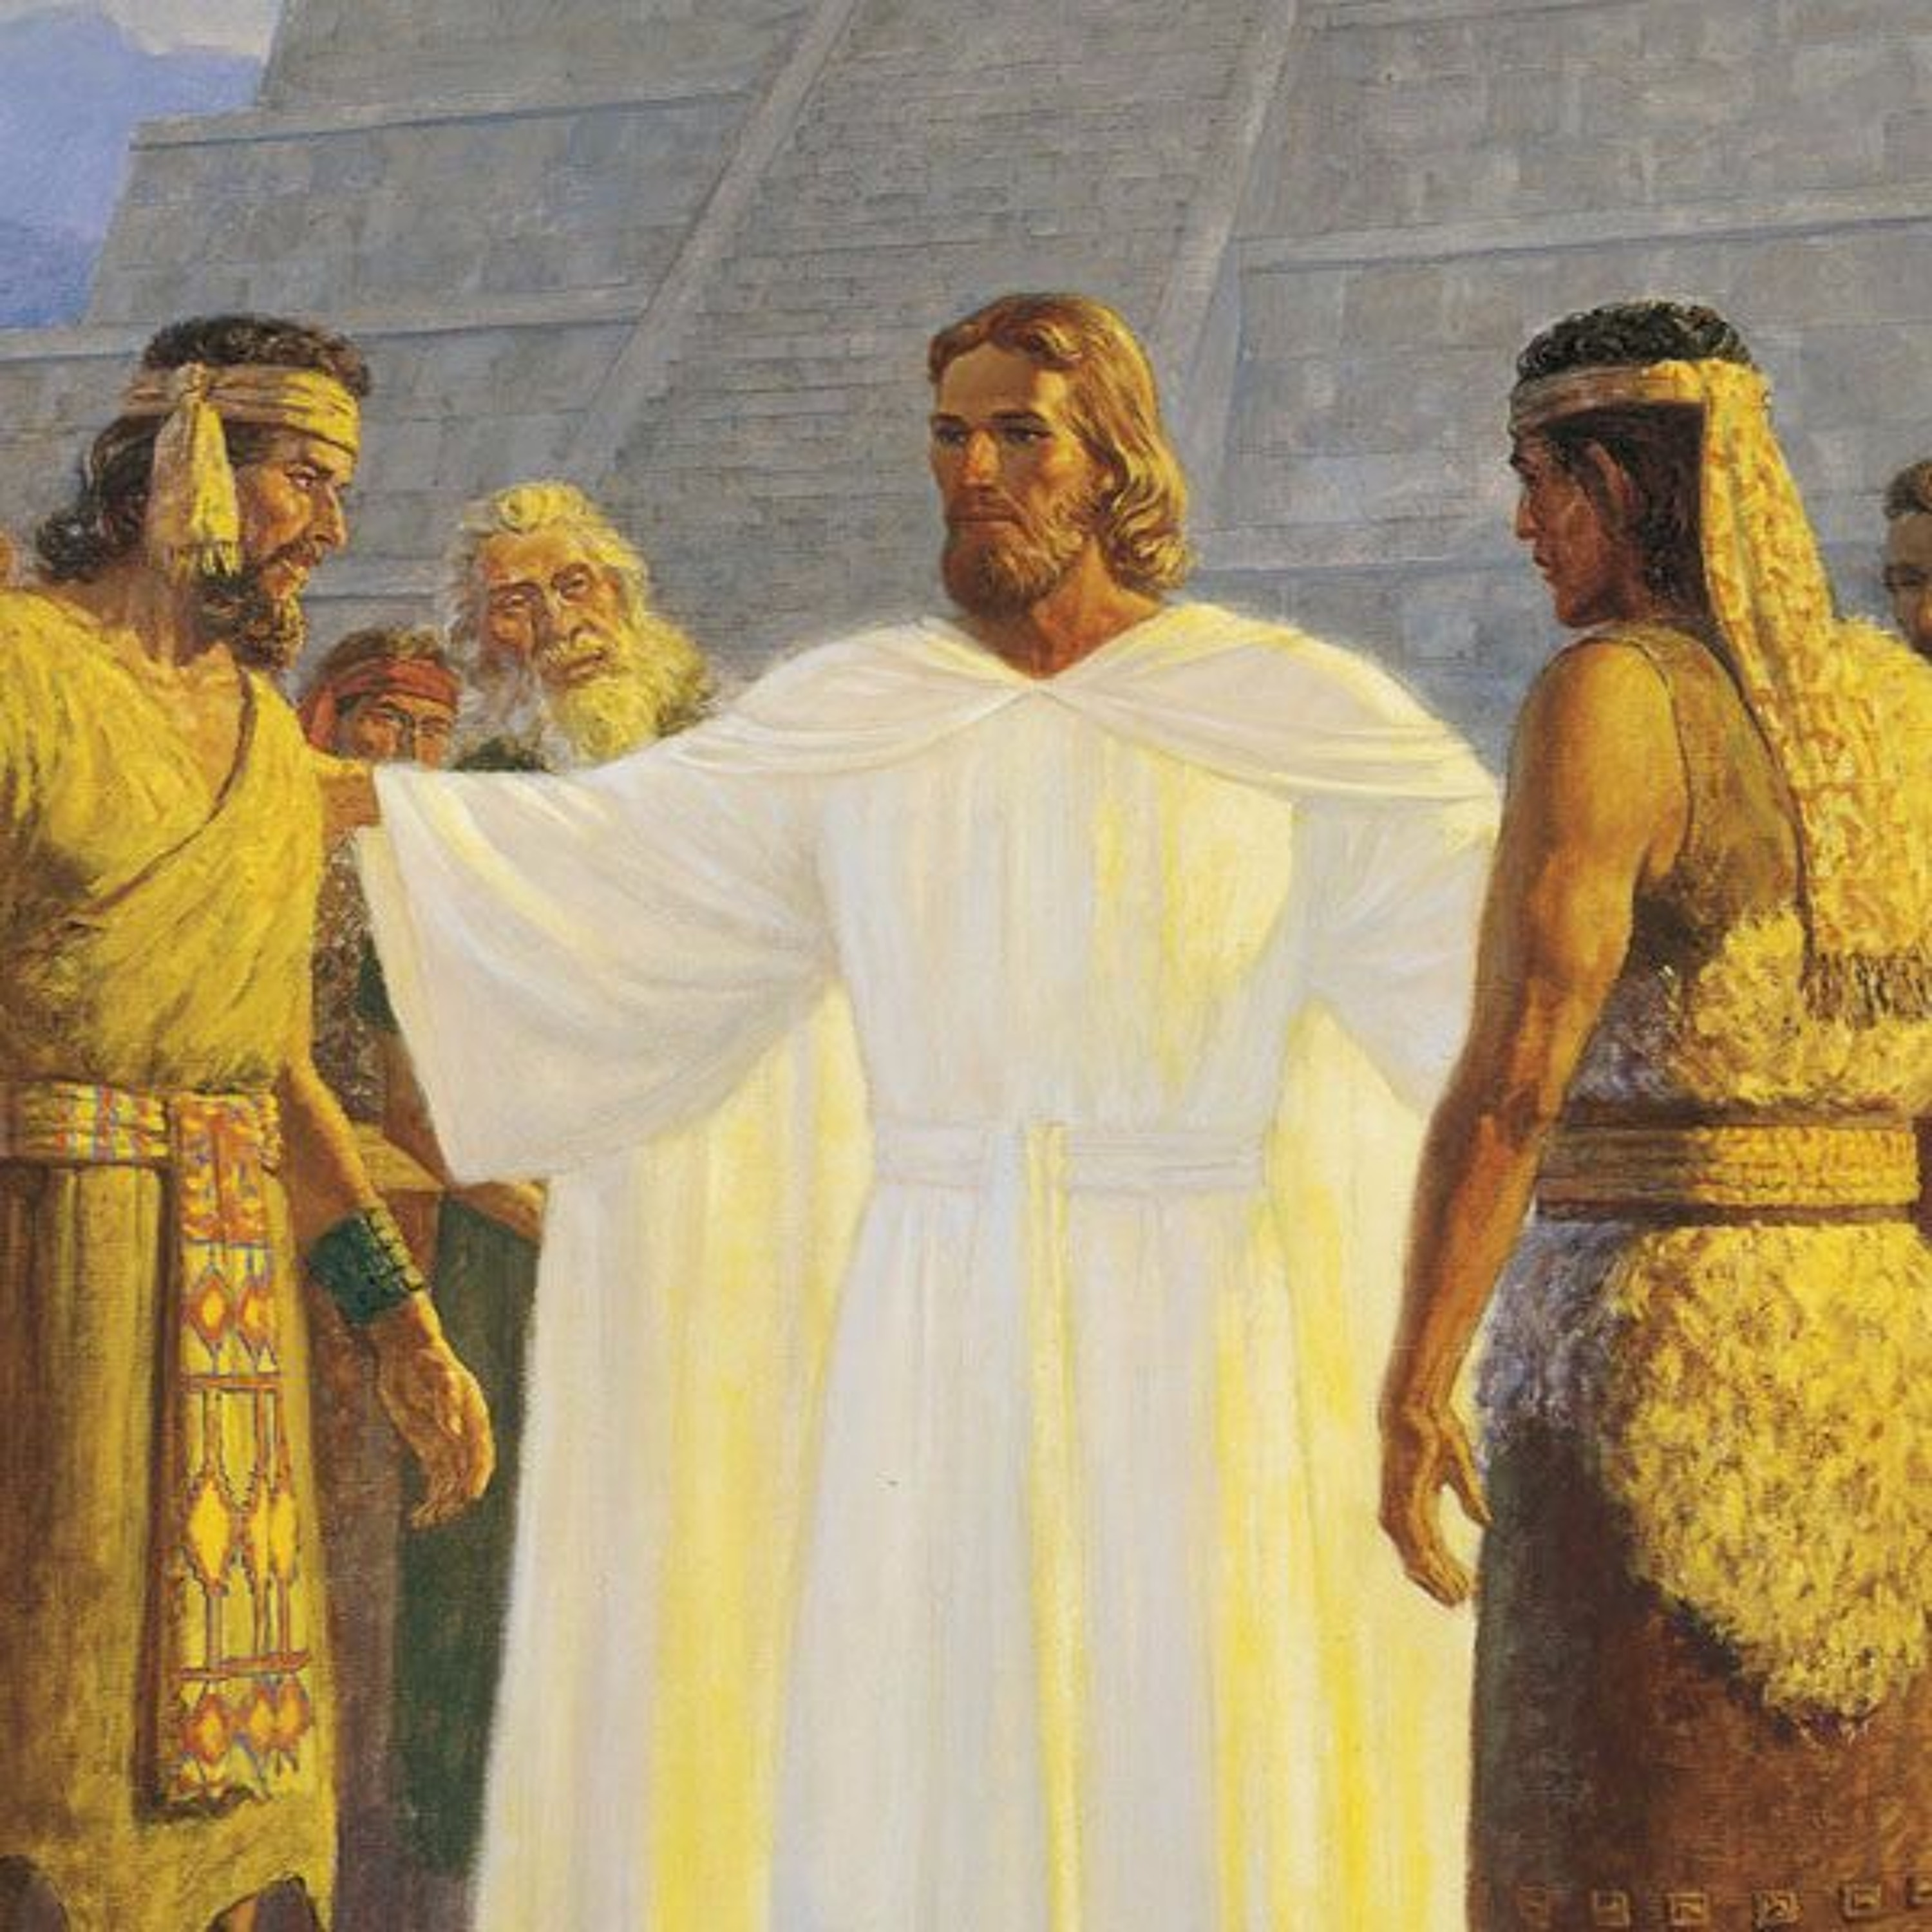 How Did the Book of Mormon Influence...